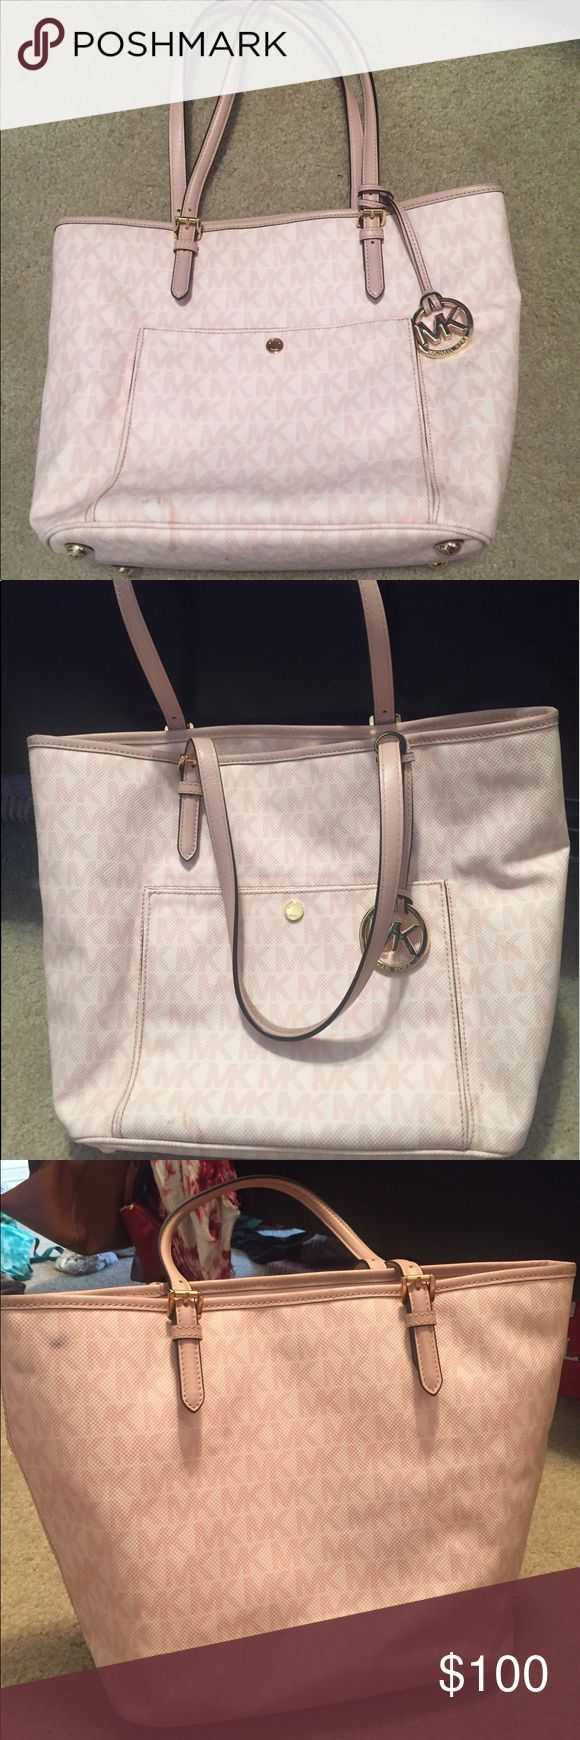 Light pink Michael Kors purse Used Michael Kors purse, minor stains but nothing serious KORS Michael Kors Bags Shoulder Bags